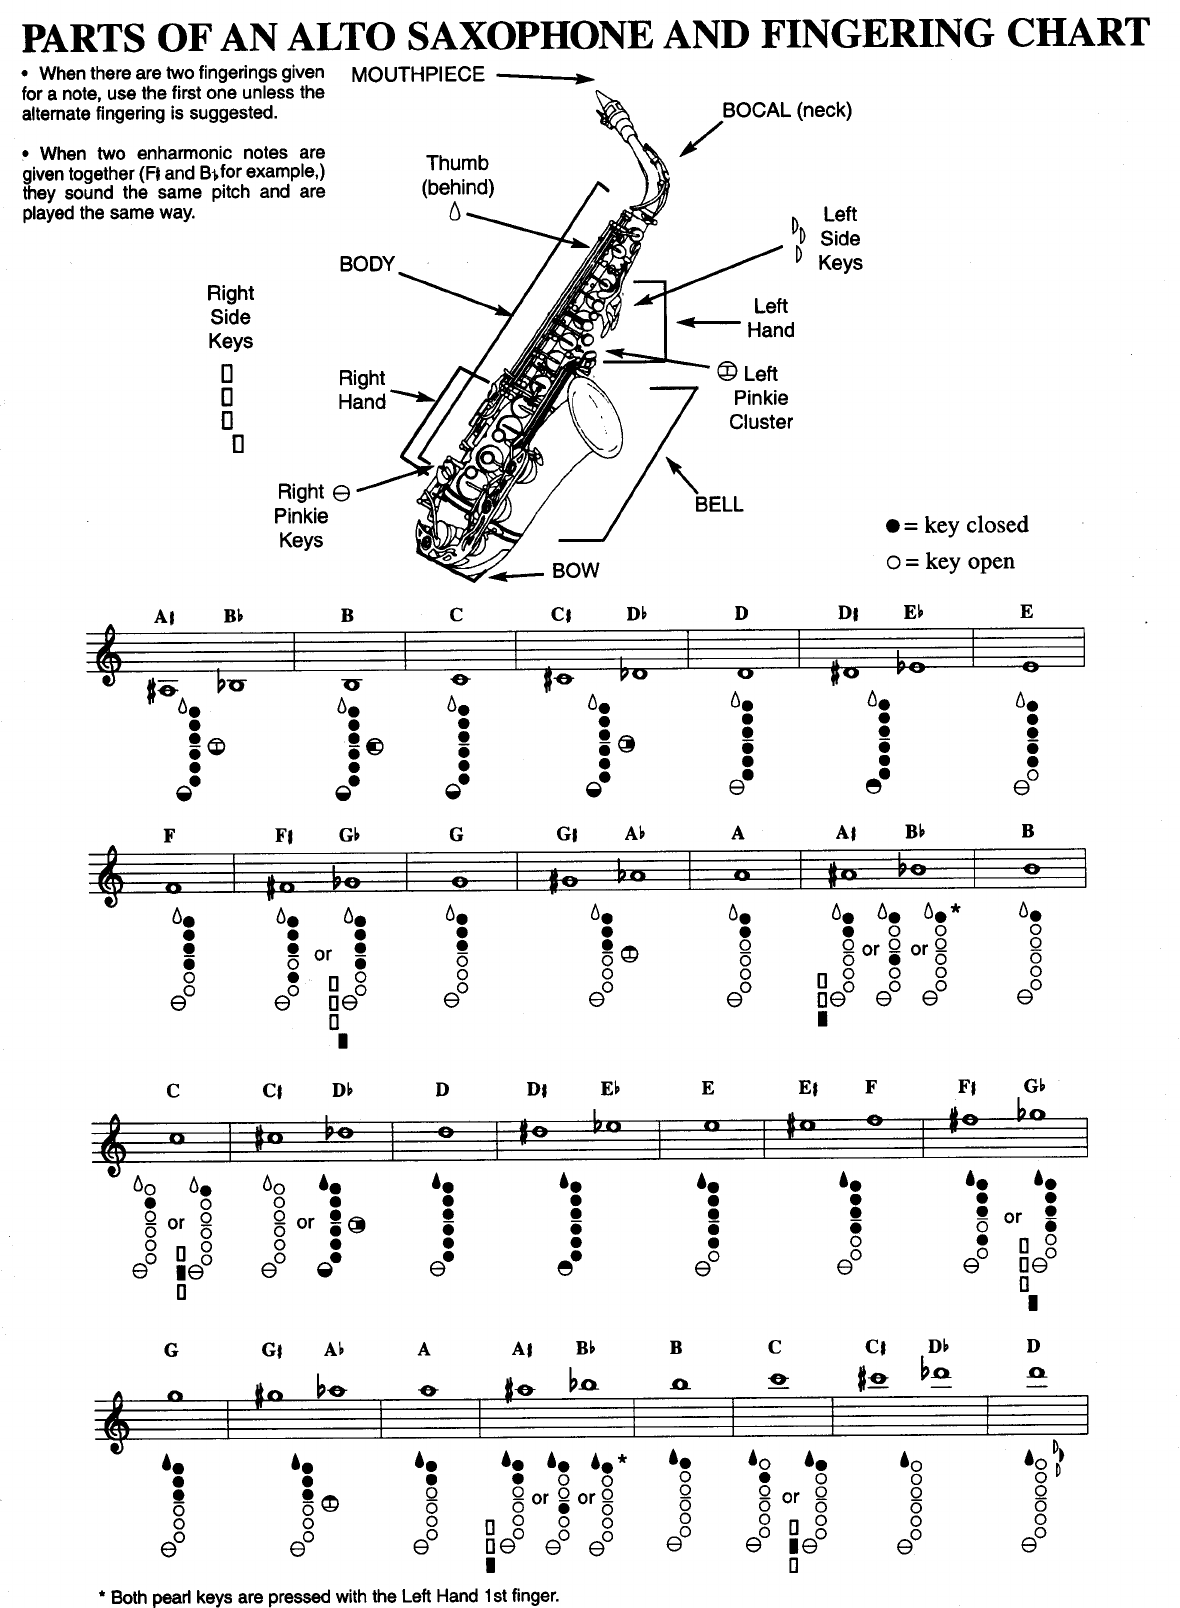 Parts of an alto saxophone and fingering chart music school